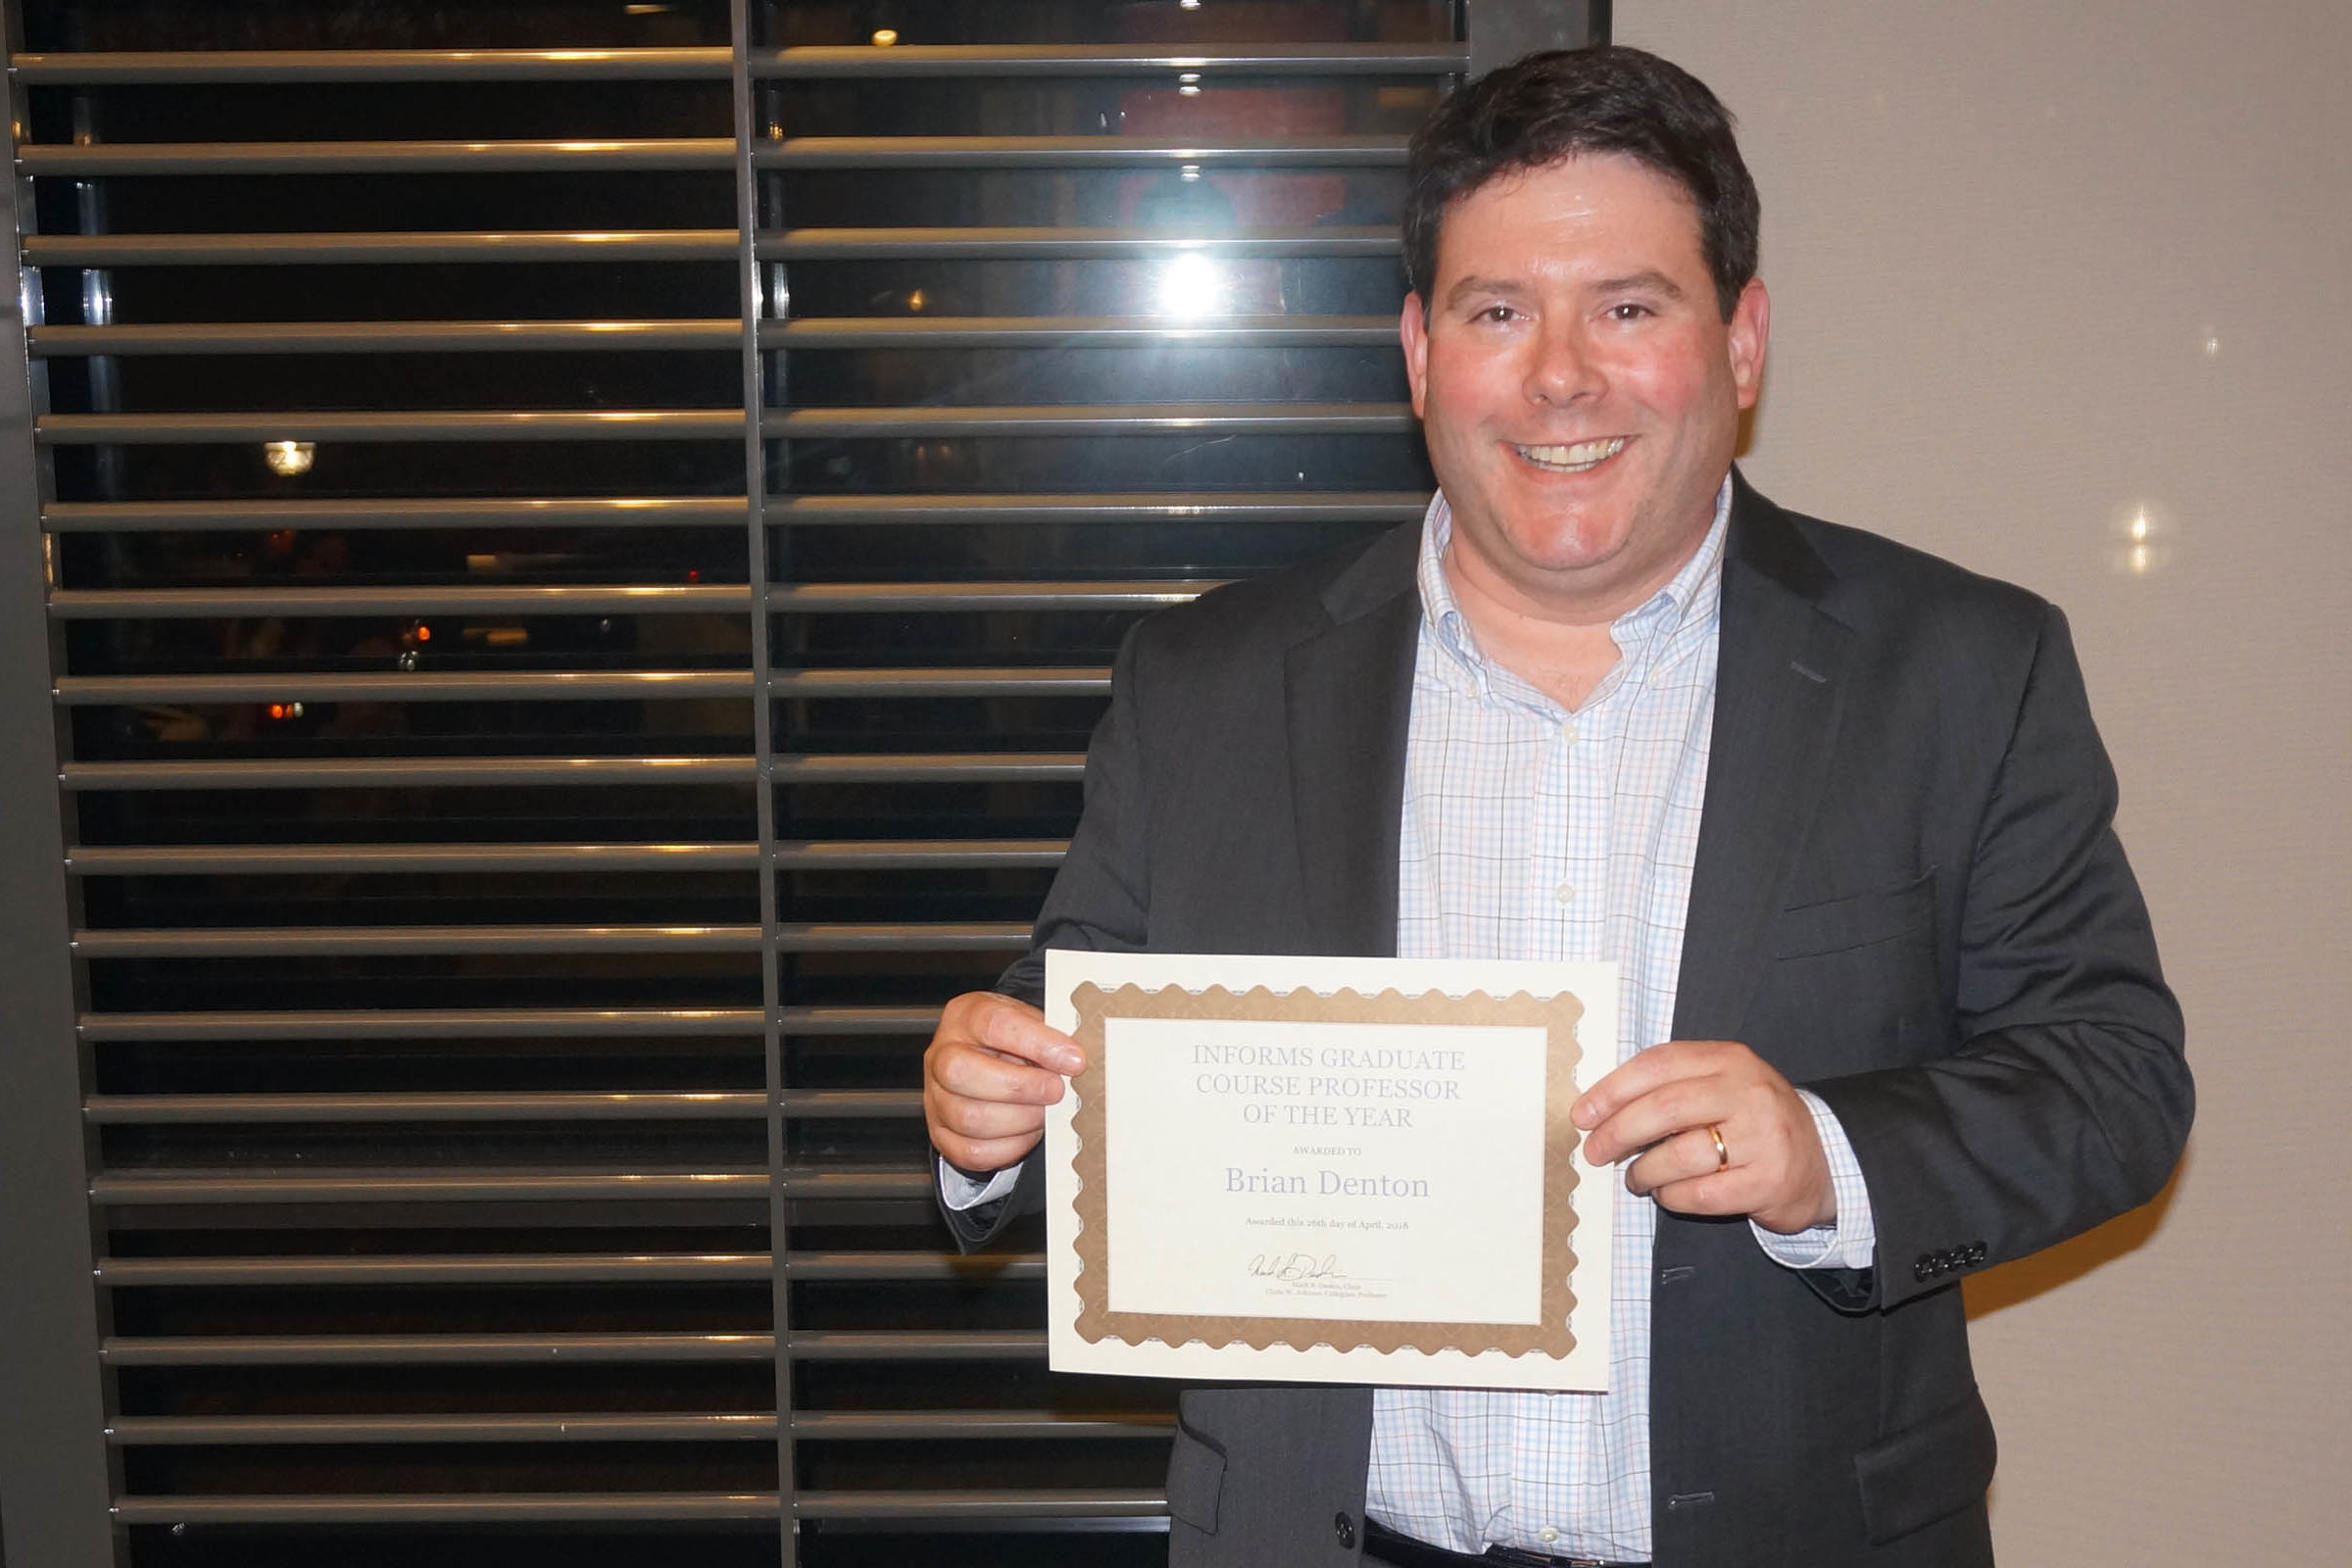 Brian Denton receives INFORMS Graduate Course Professor of the Year Award